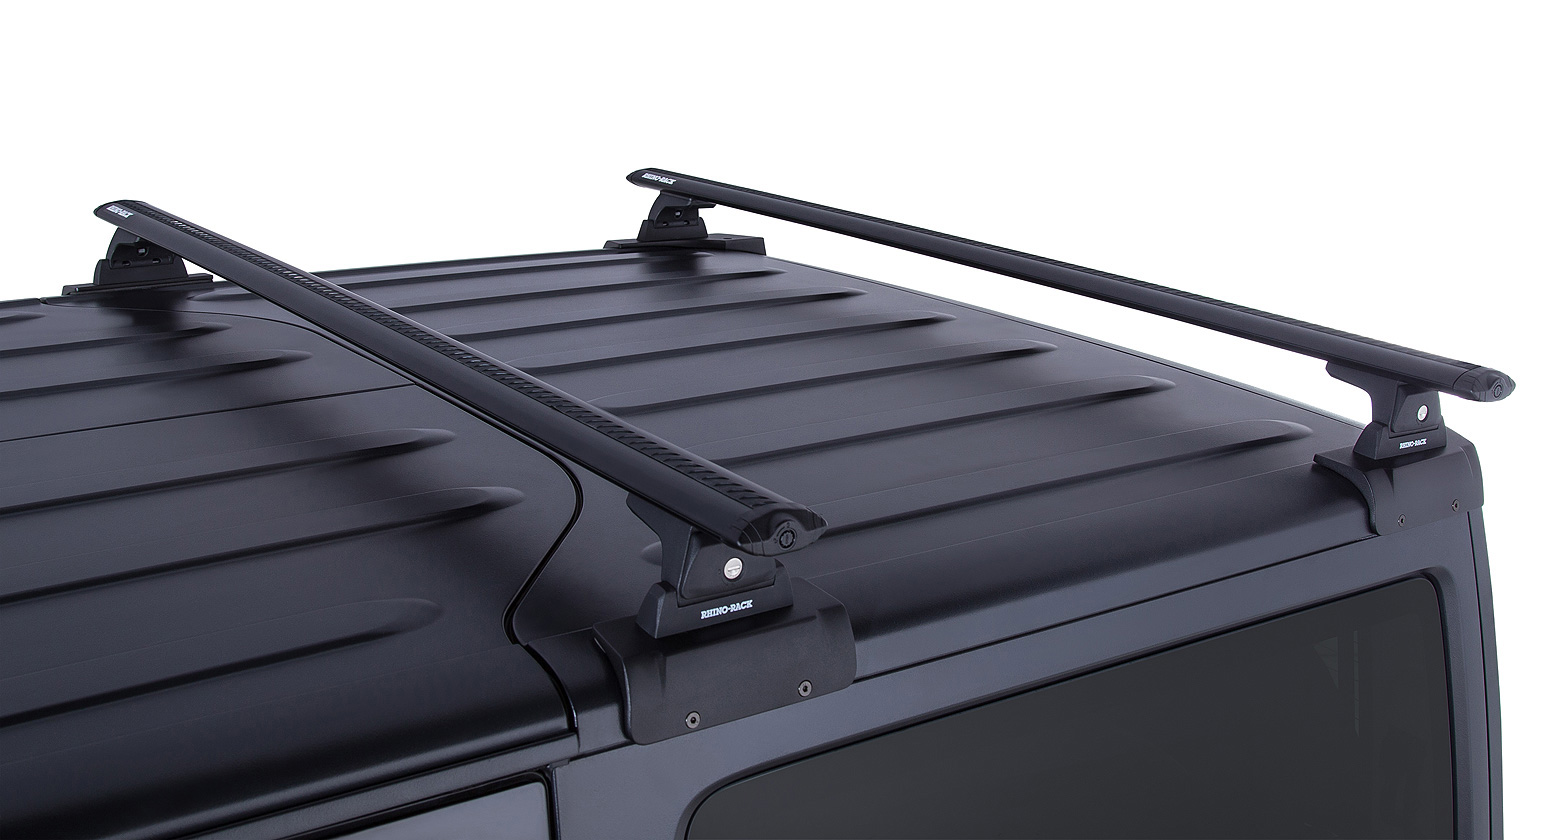 hilux double toyota cab product pioneer roof rhino ute rack tradie